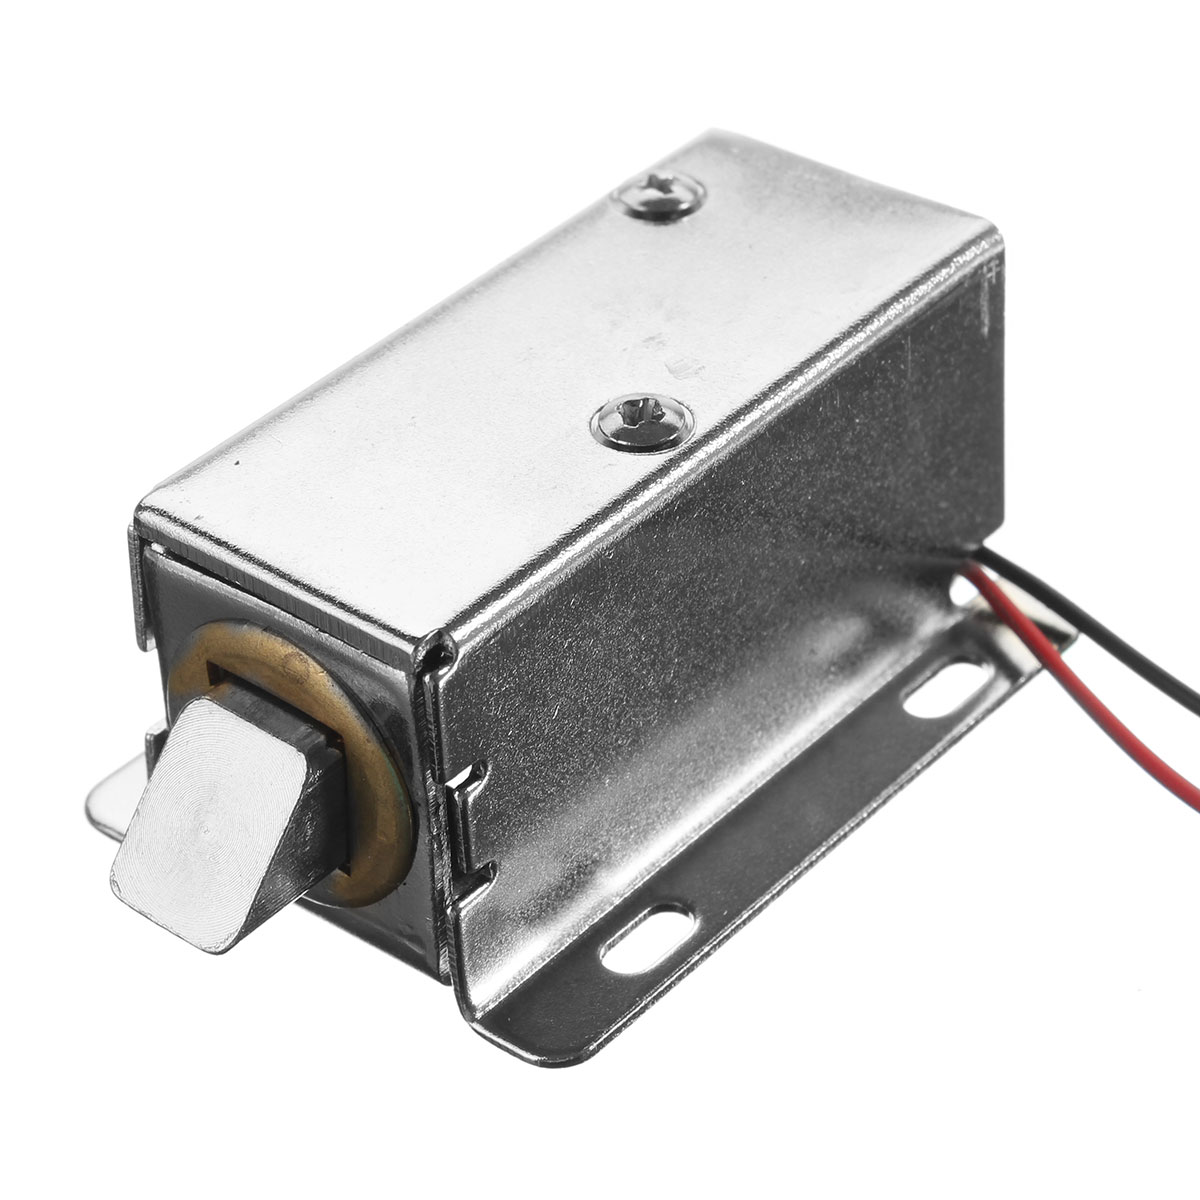 rfid door lock description Description advance rfid (radio frequency identification) is an electronic lock which combines all the aesthetic options of the modular, design-centric advance lock with the security and reliability of contactless rfid technology.